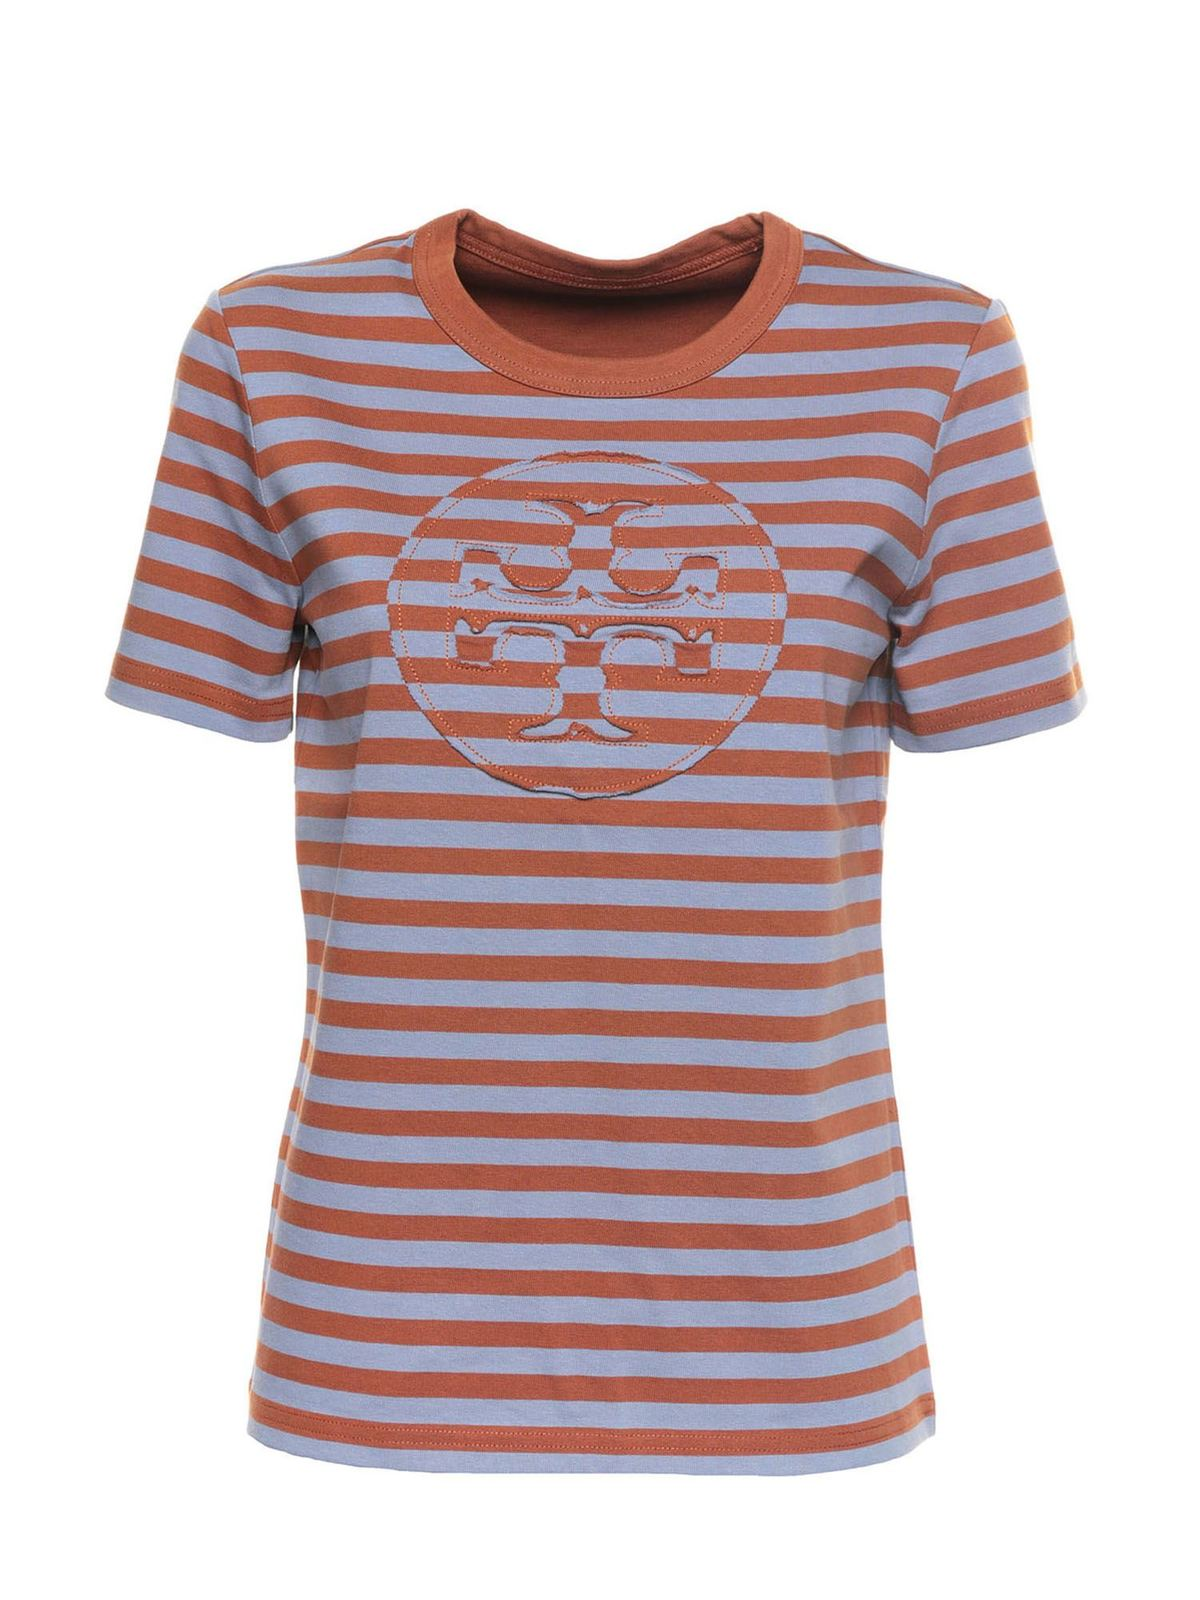 Tory Burch STRIPED T-SHIRT IN BROWN AND LIGHT BLUE